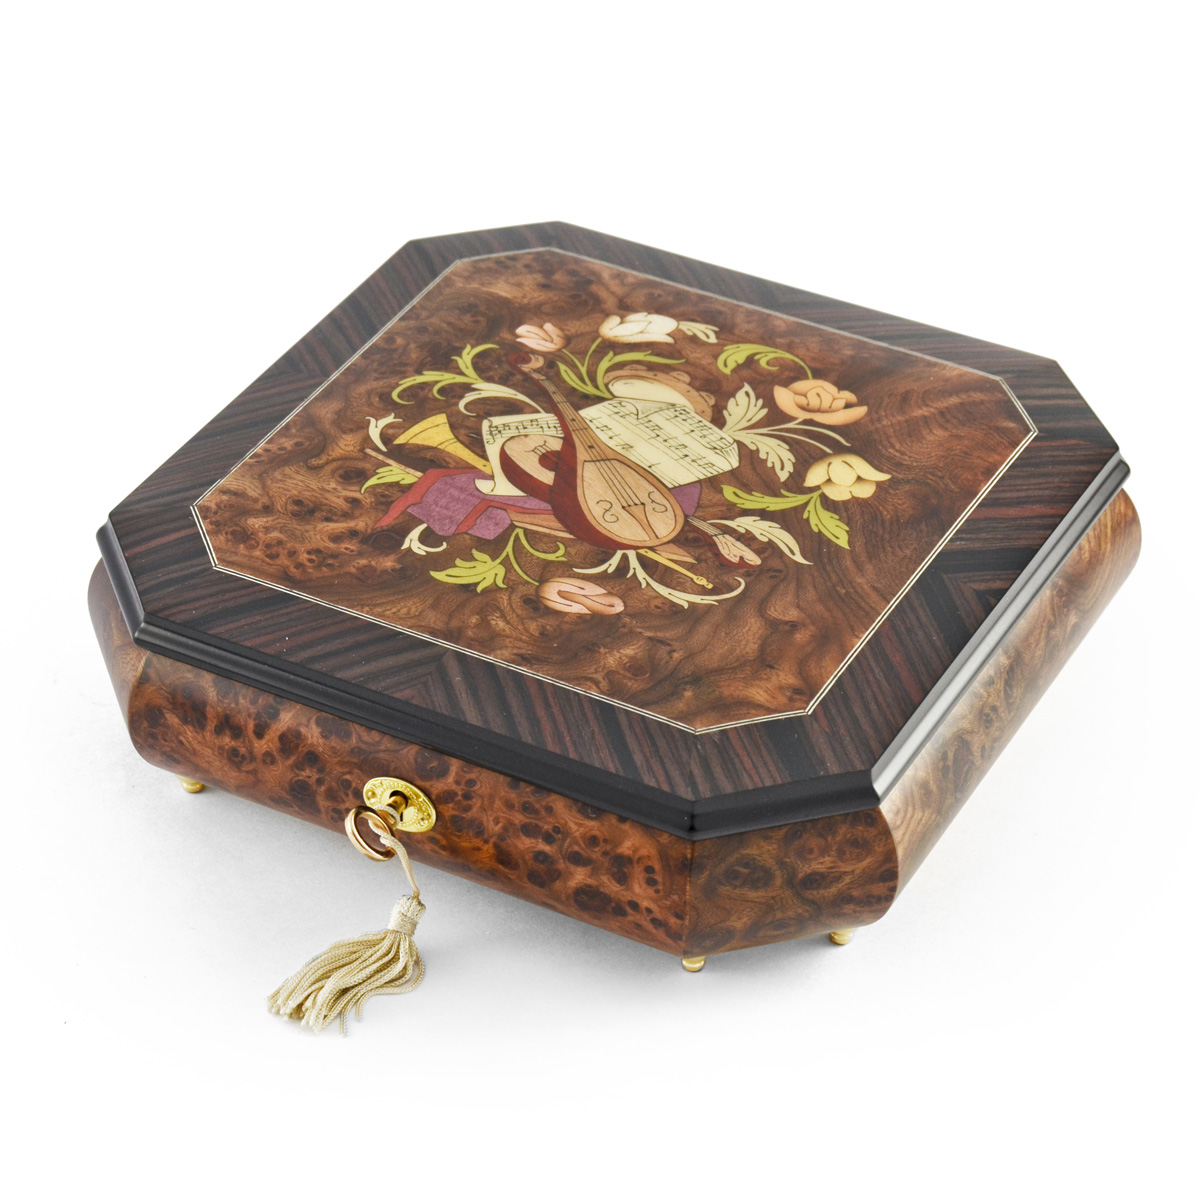 Perfectly Hand Crafted Floral Music Jewelry Box HUGE SALE Singing